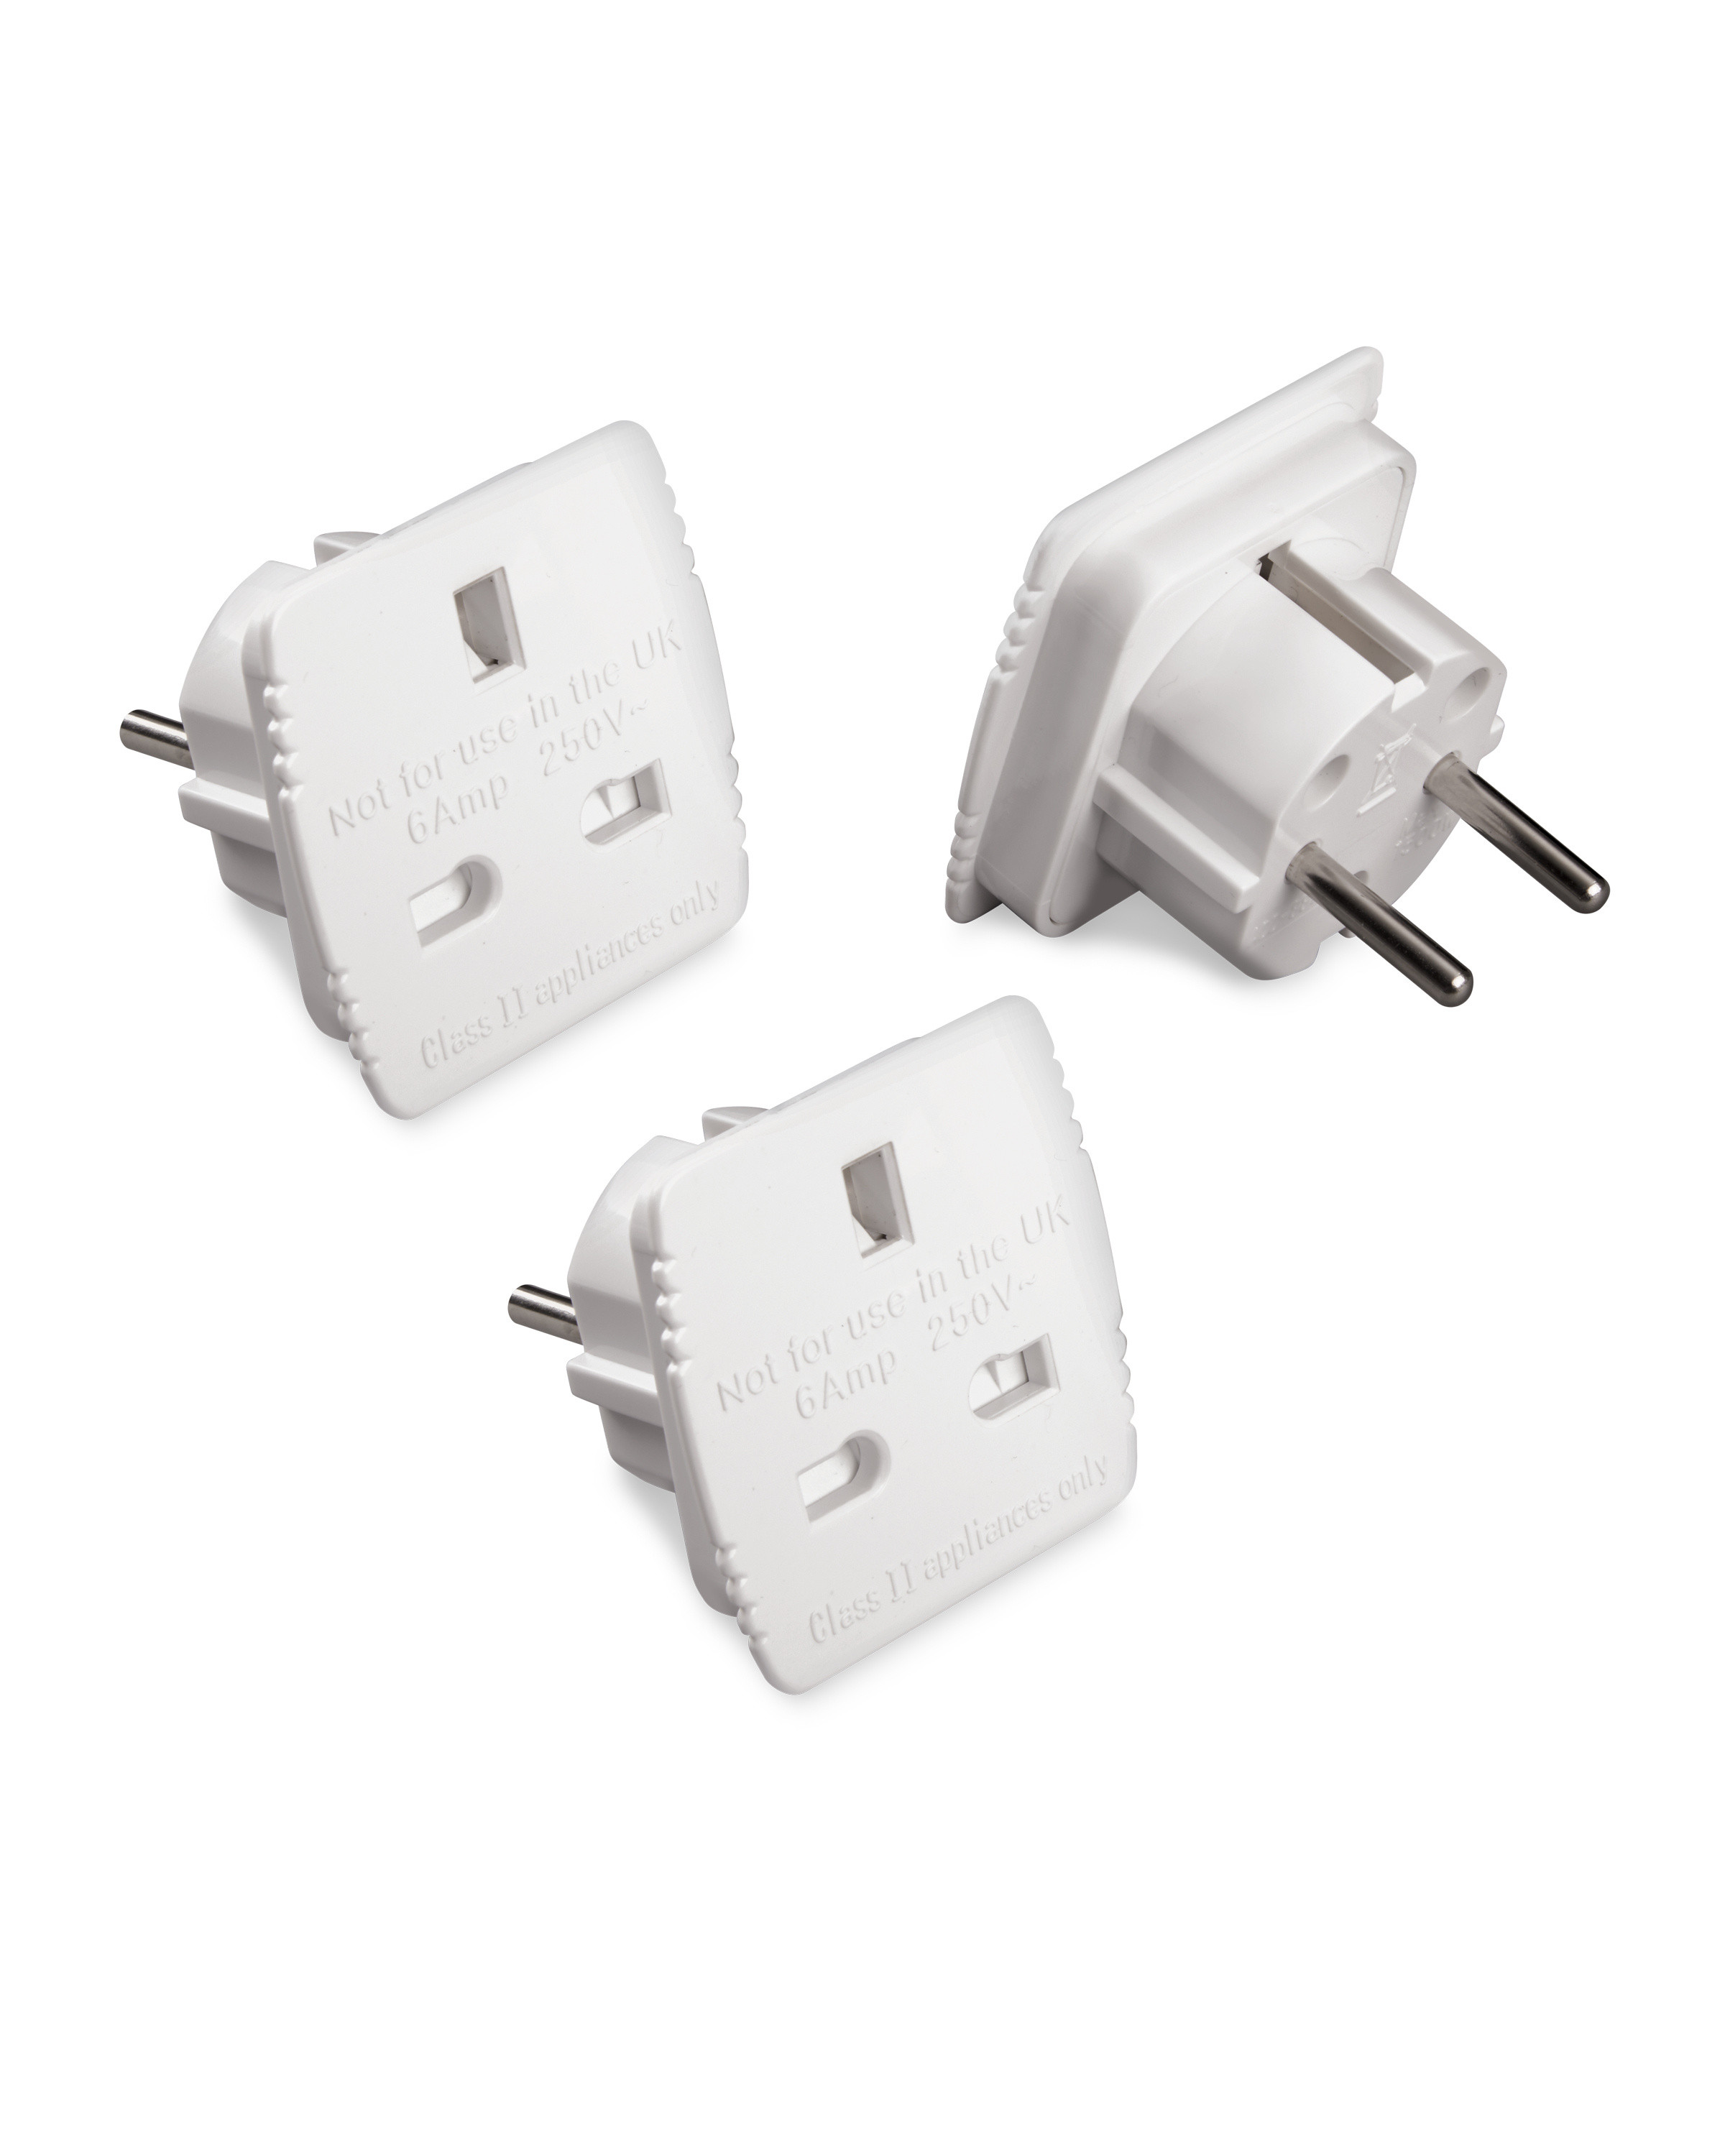 Eu Travel Adapters 3 Pack Aldi Uk The Origins Of Australianplug And Other Electrical Trivia